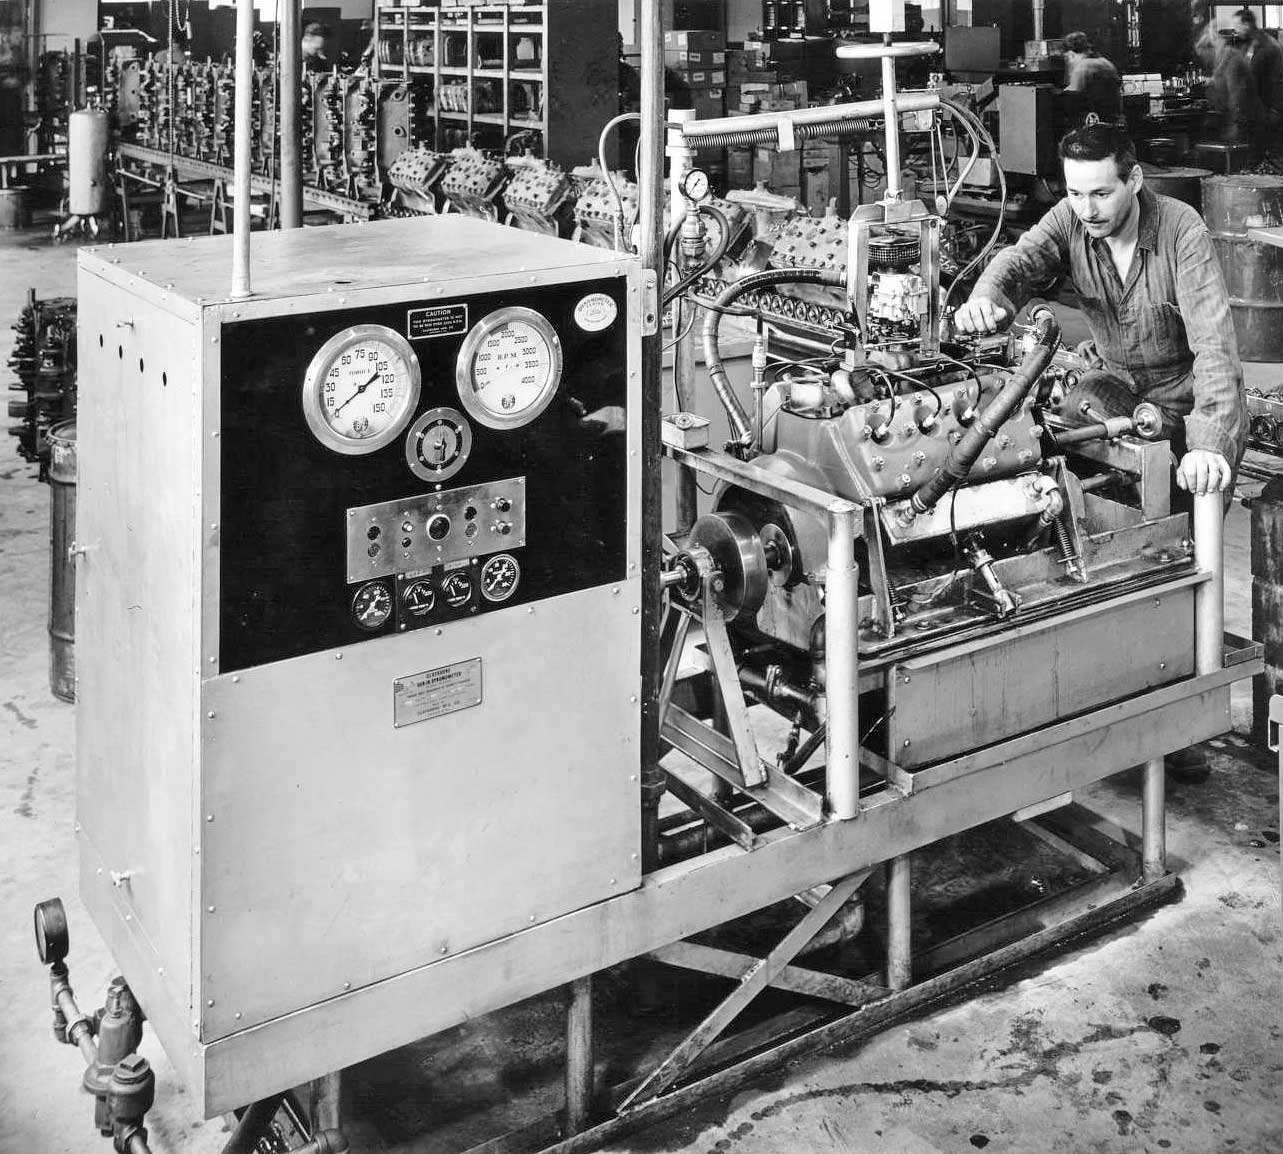 hight resolution of this machine is a dynamometer used for testing finished engines and its operator posing for the photo the exhaust pipes are not installed yet